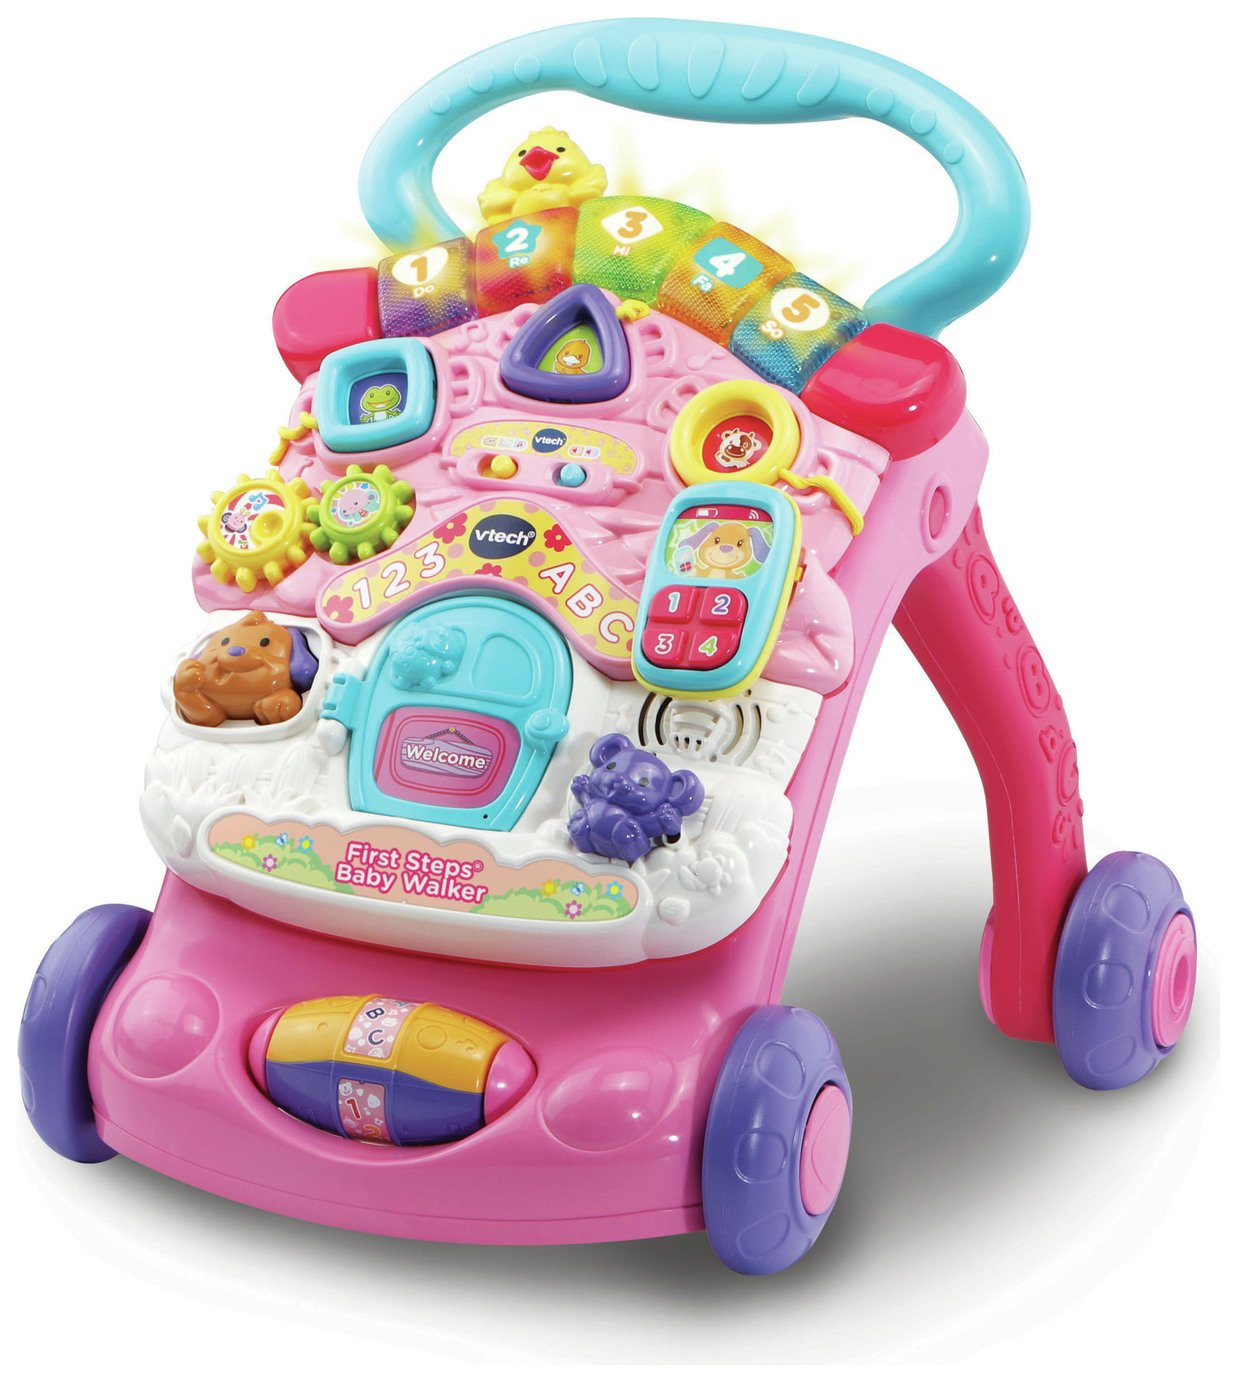 VTech First Steps Baby Walker - Pink from VTech